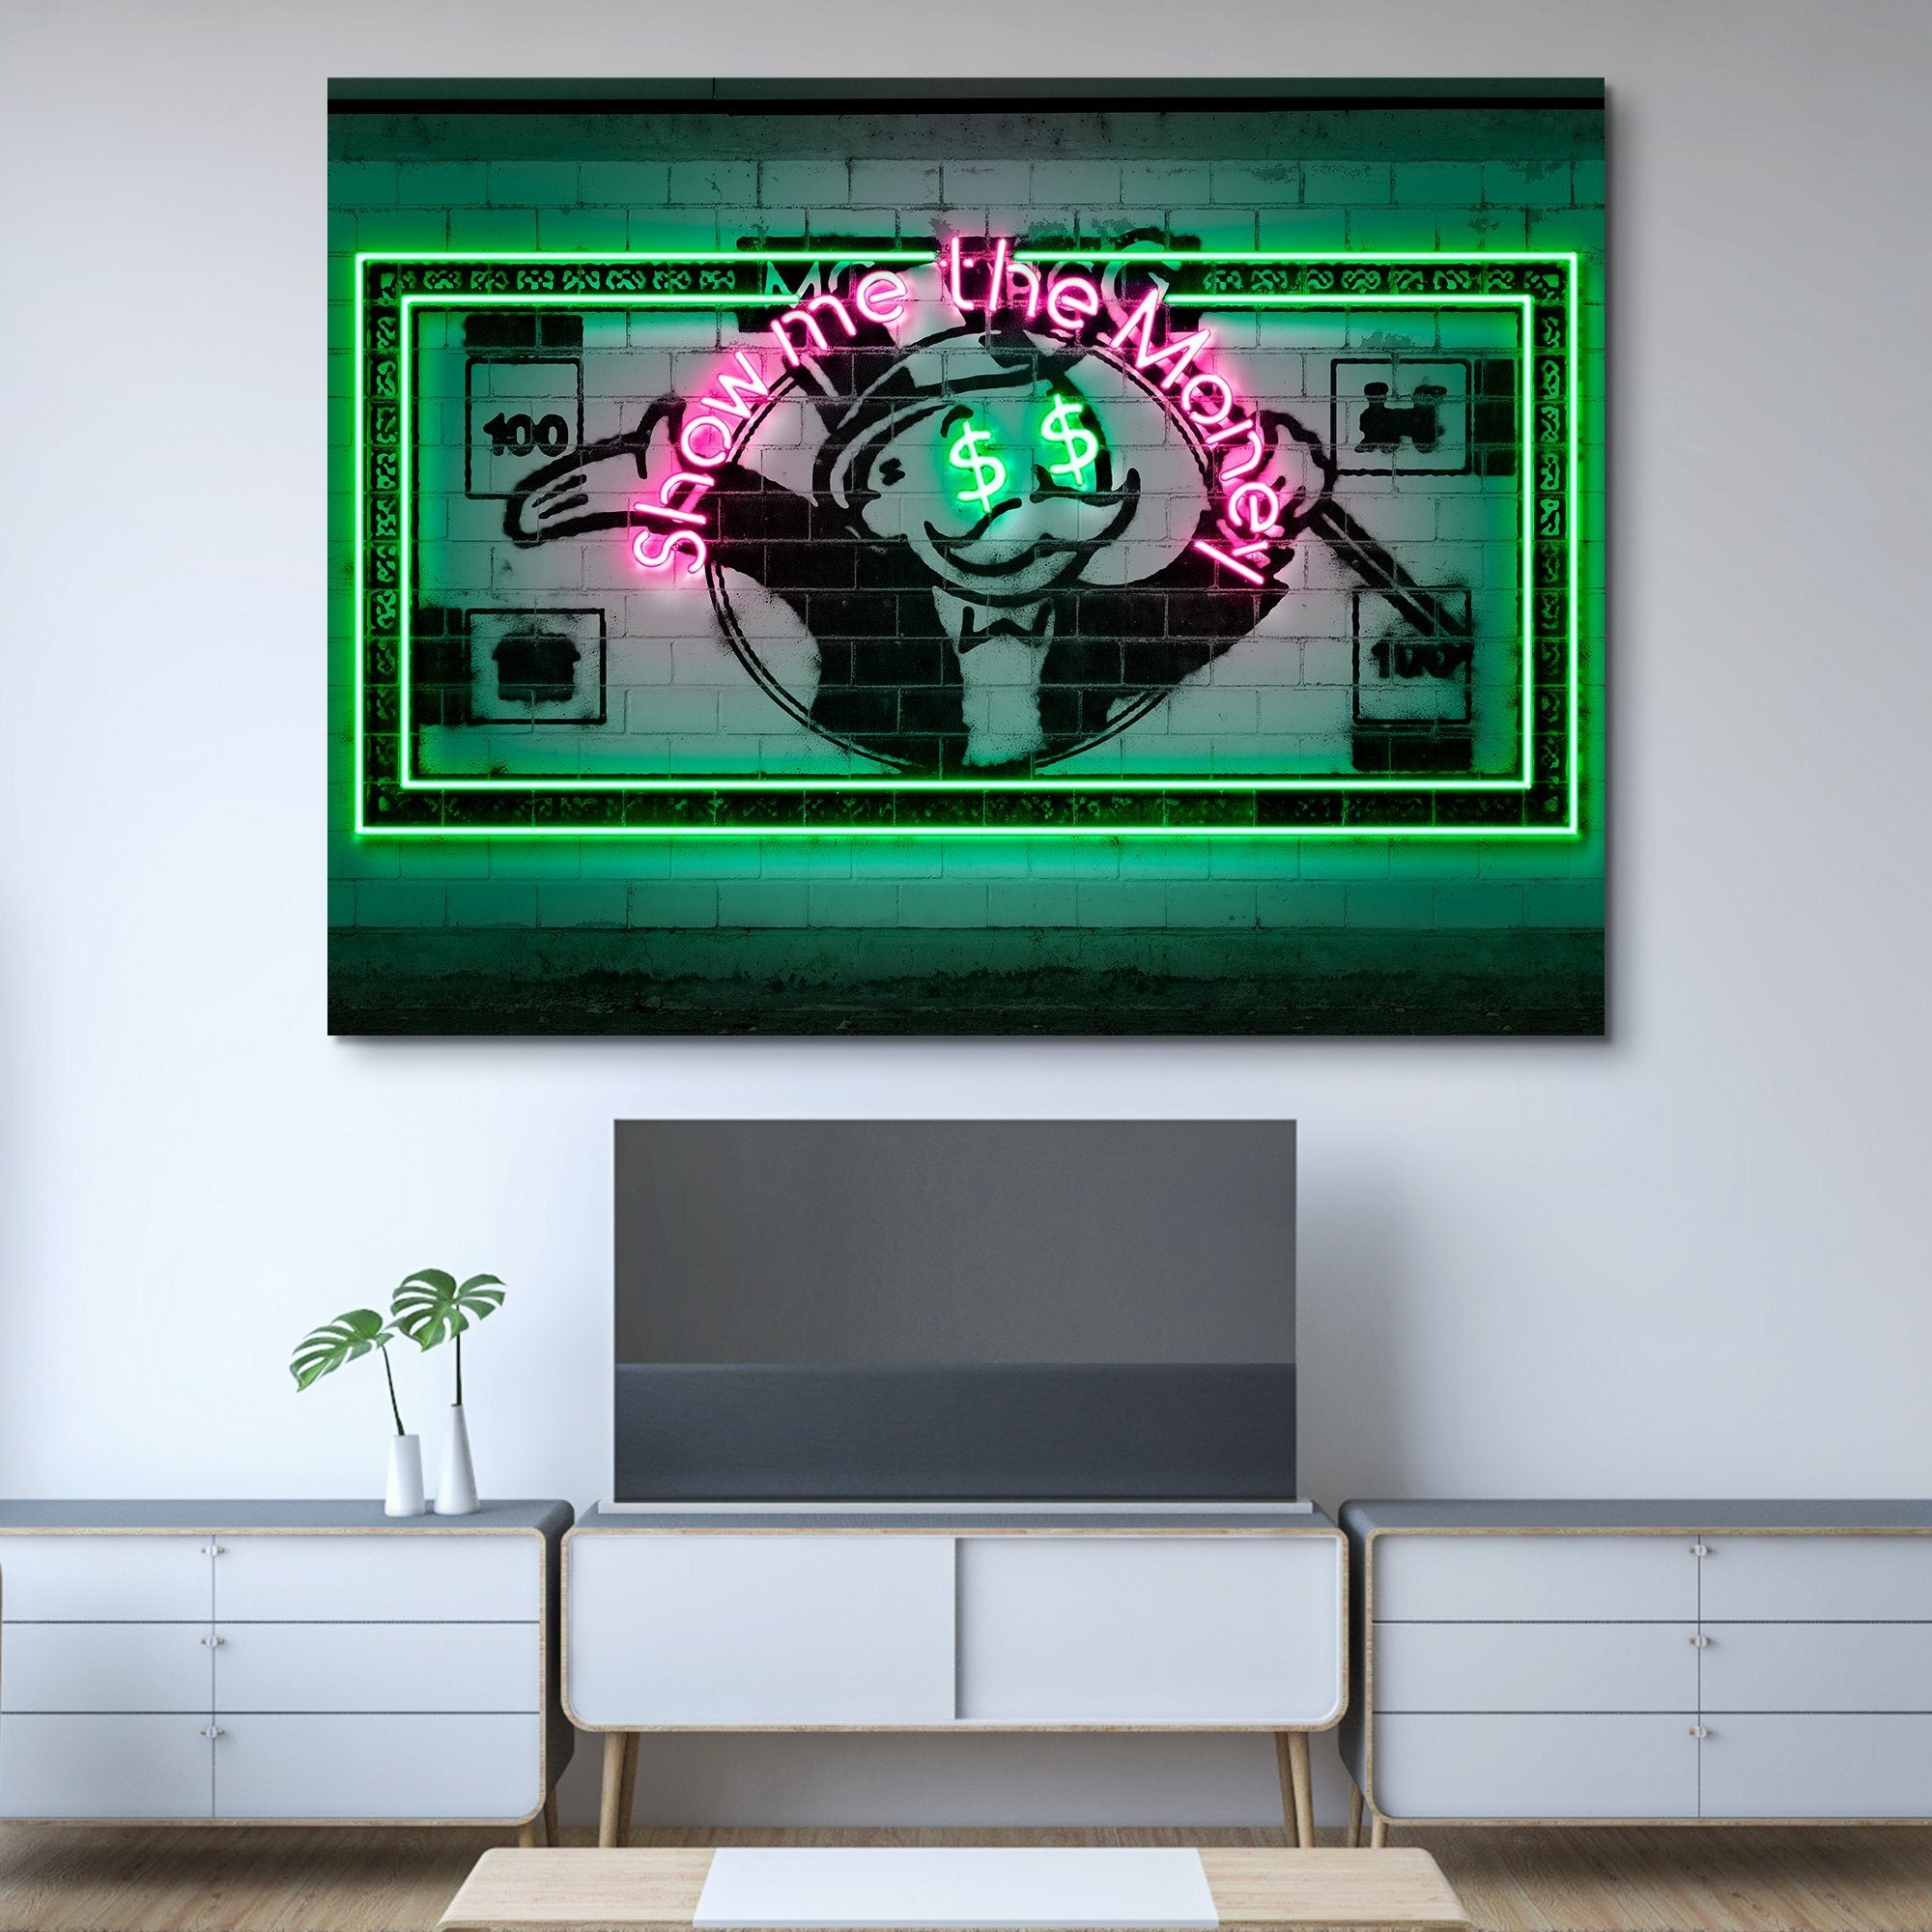 Show Me The Money wall art